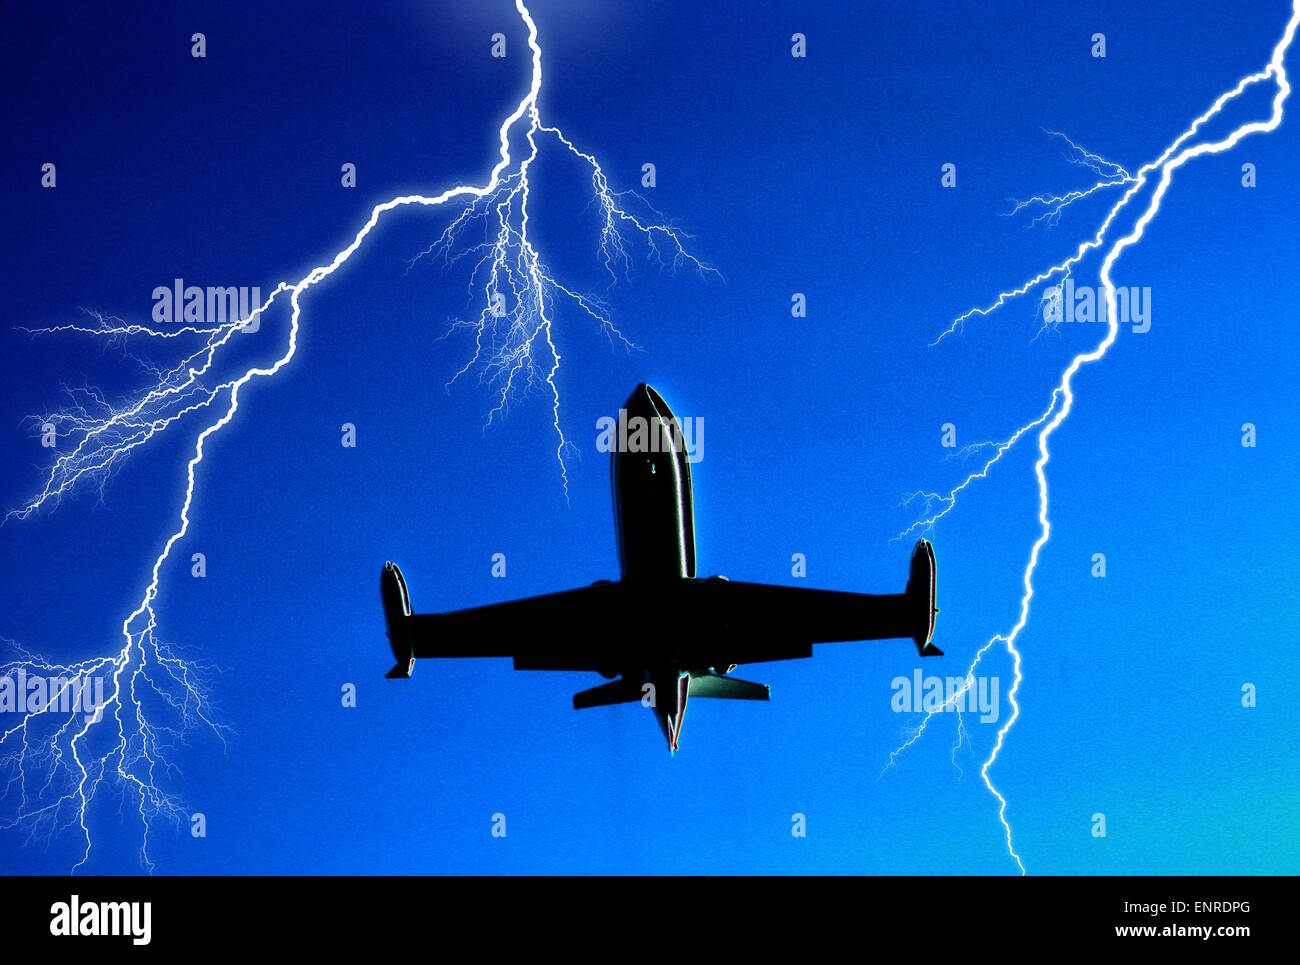 airborne jet airplane surrounded by multiple lightning bolts - Stock Image